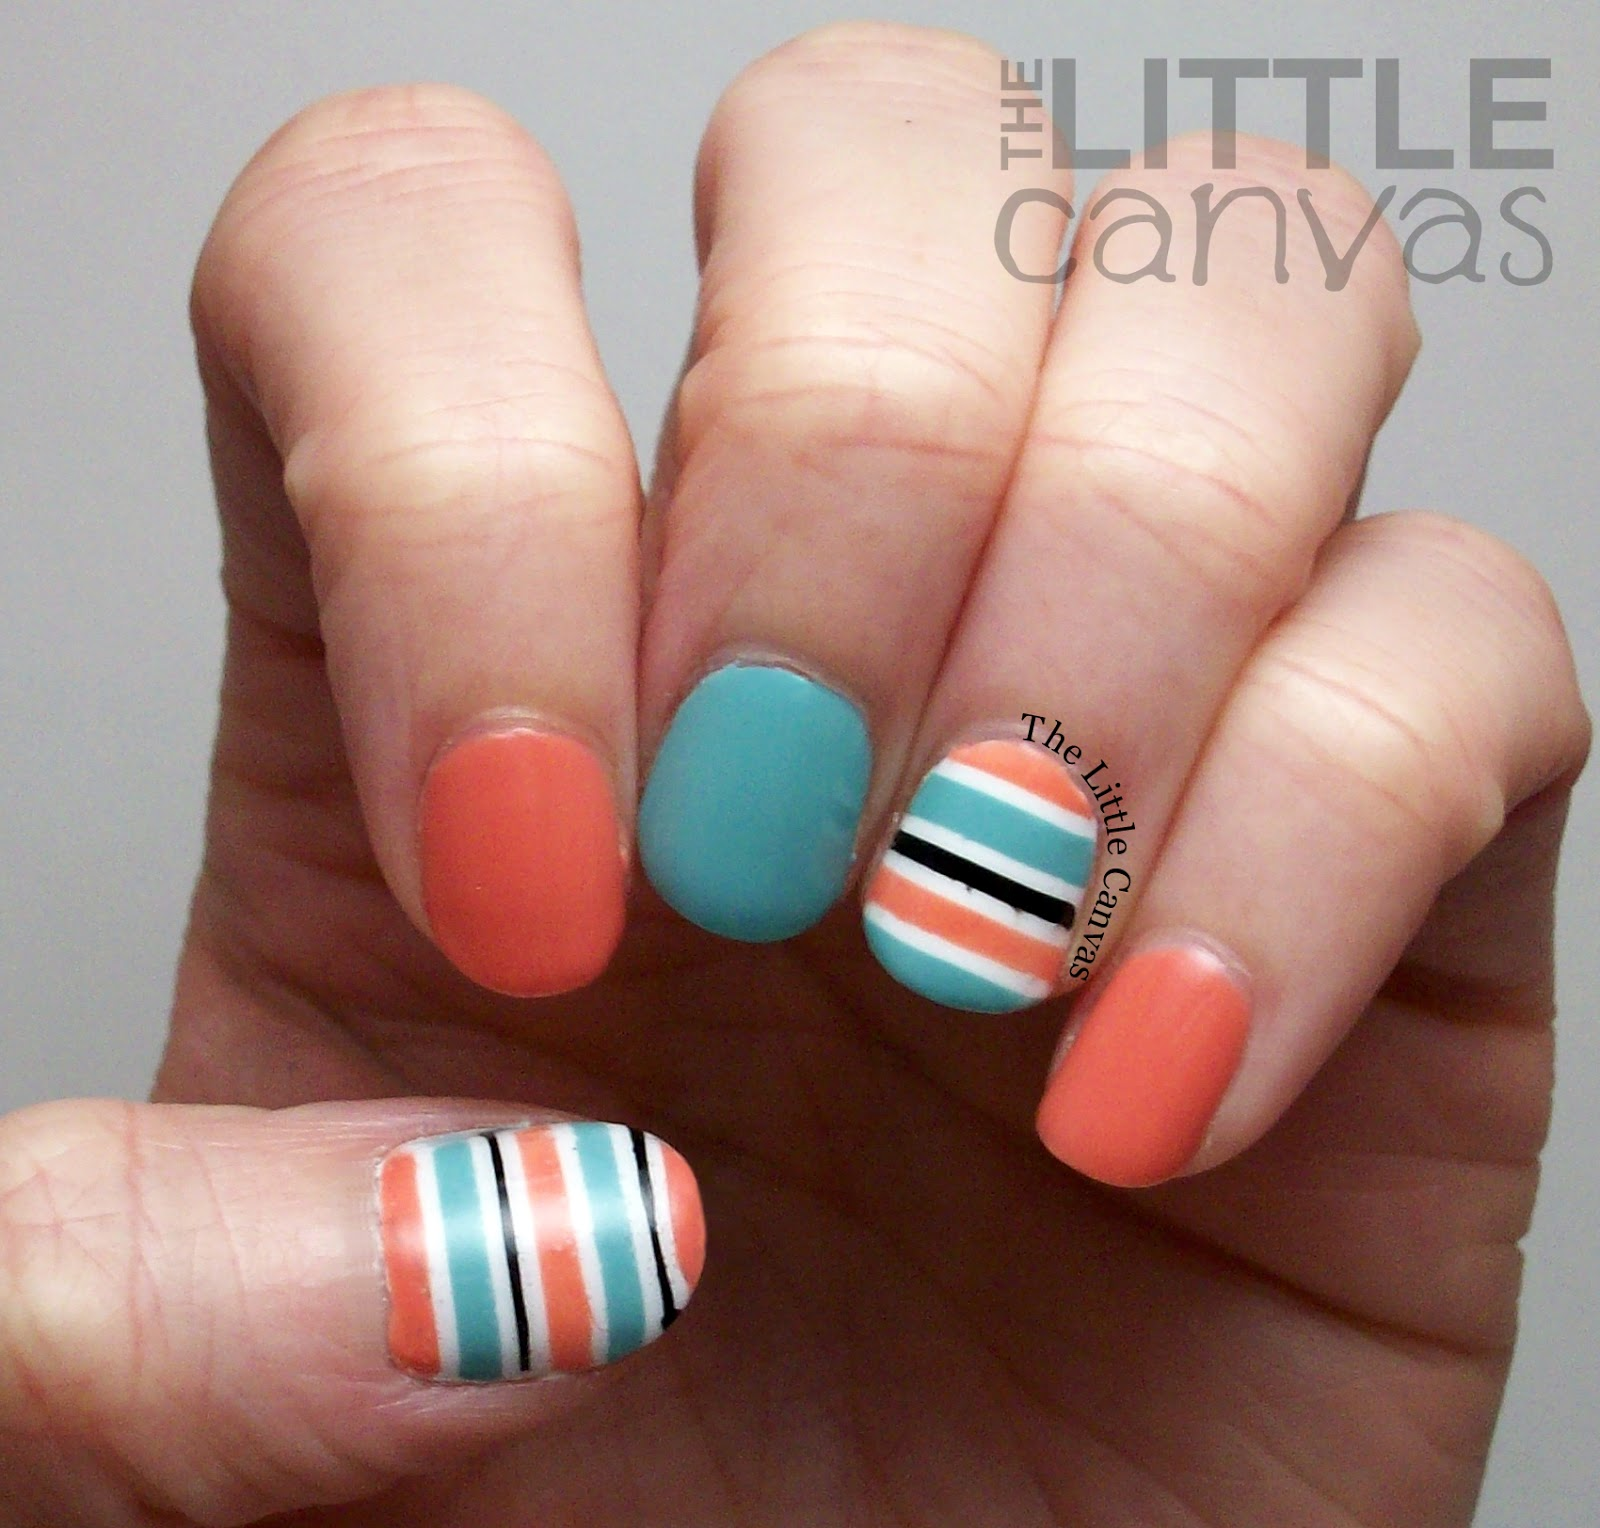 Striped Nail Art with Mary Kay Carefree Coral - The Little Canvas